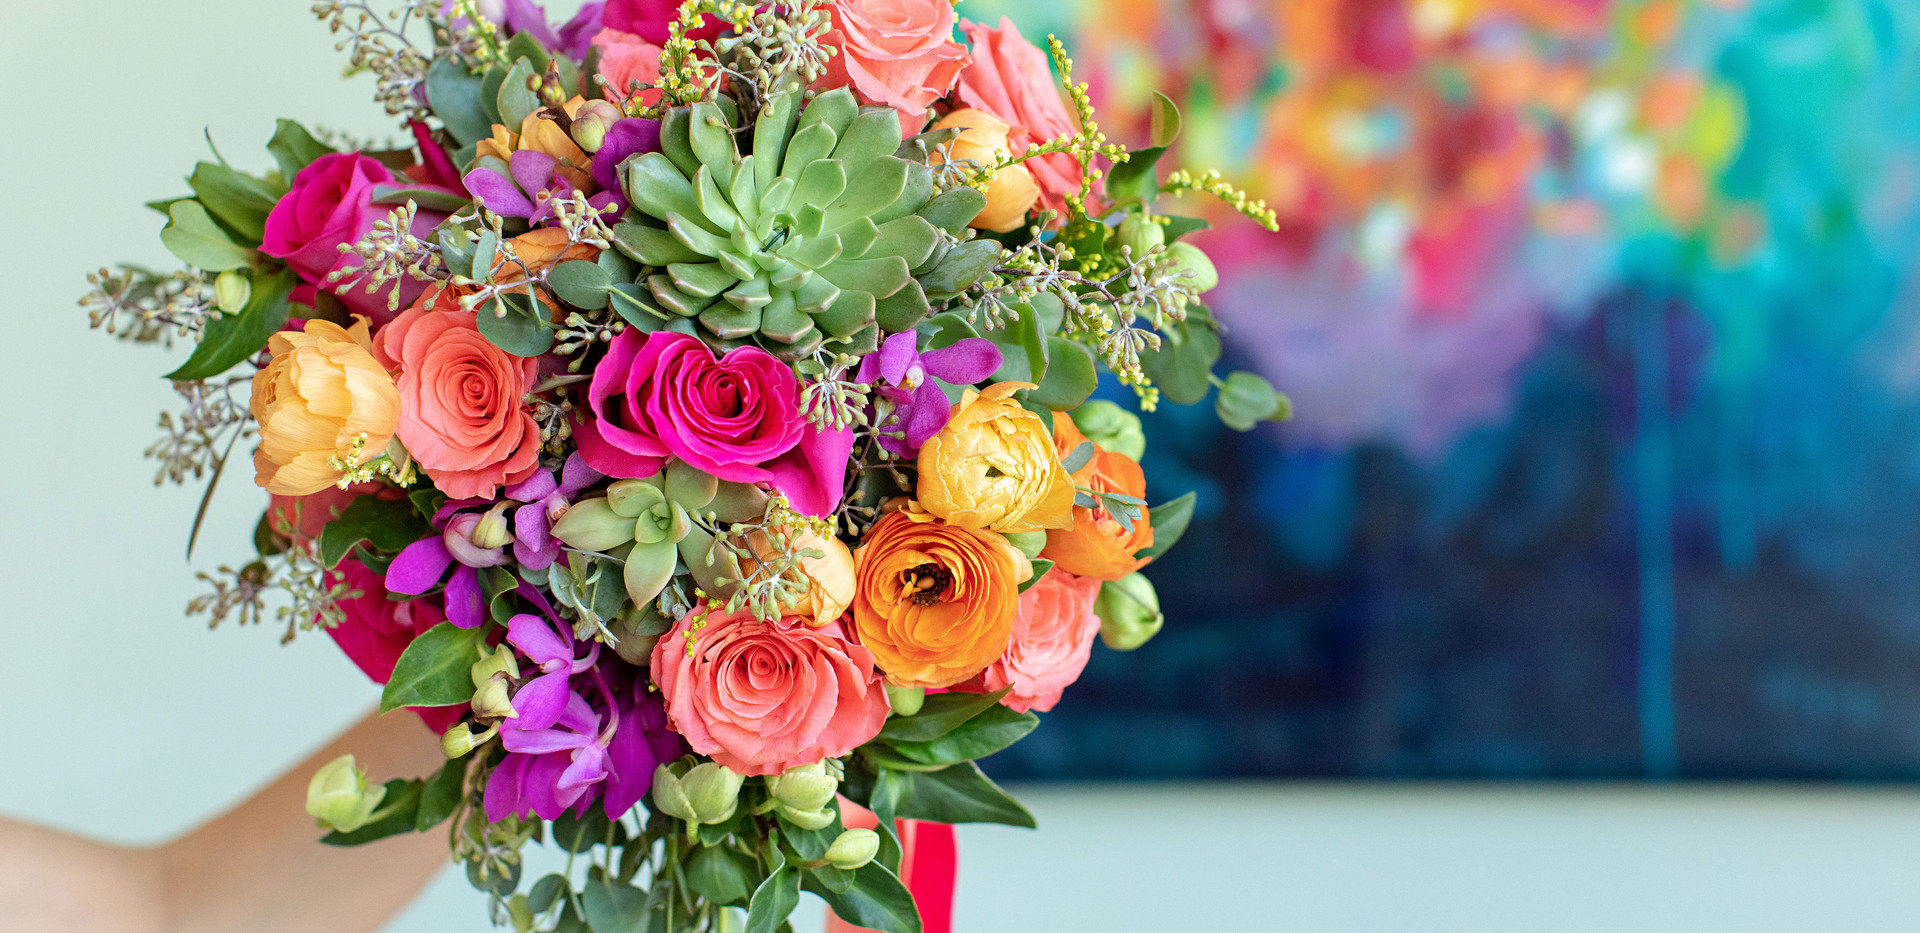 Colorful and Bright Wedding Bouquet